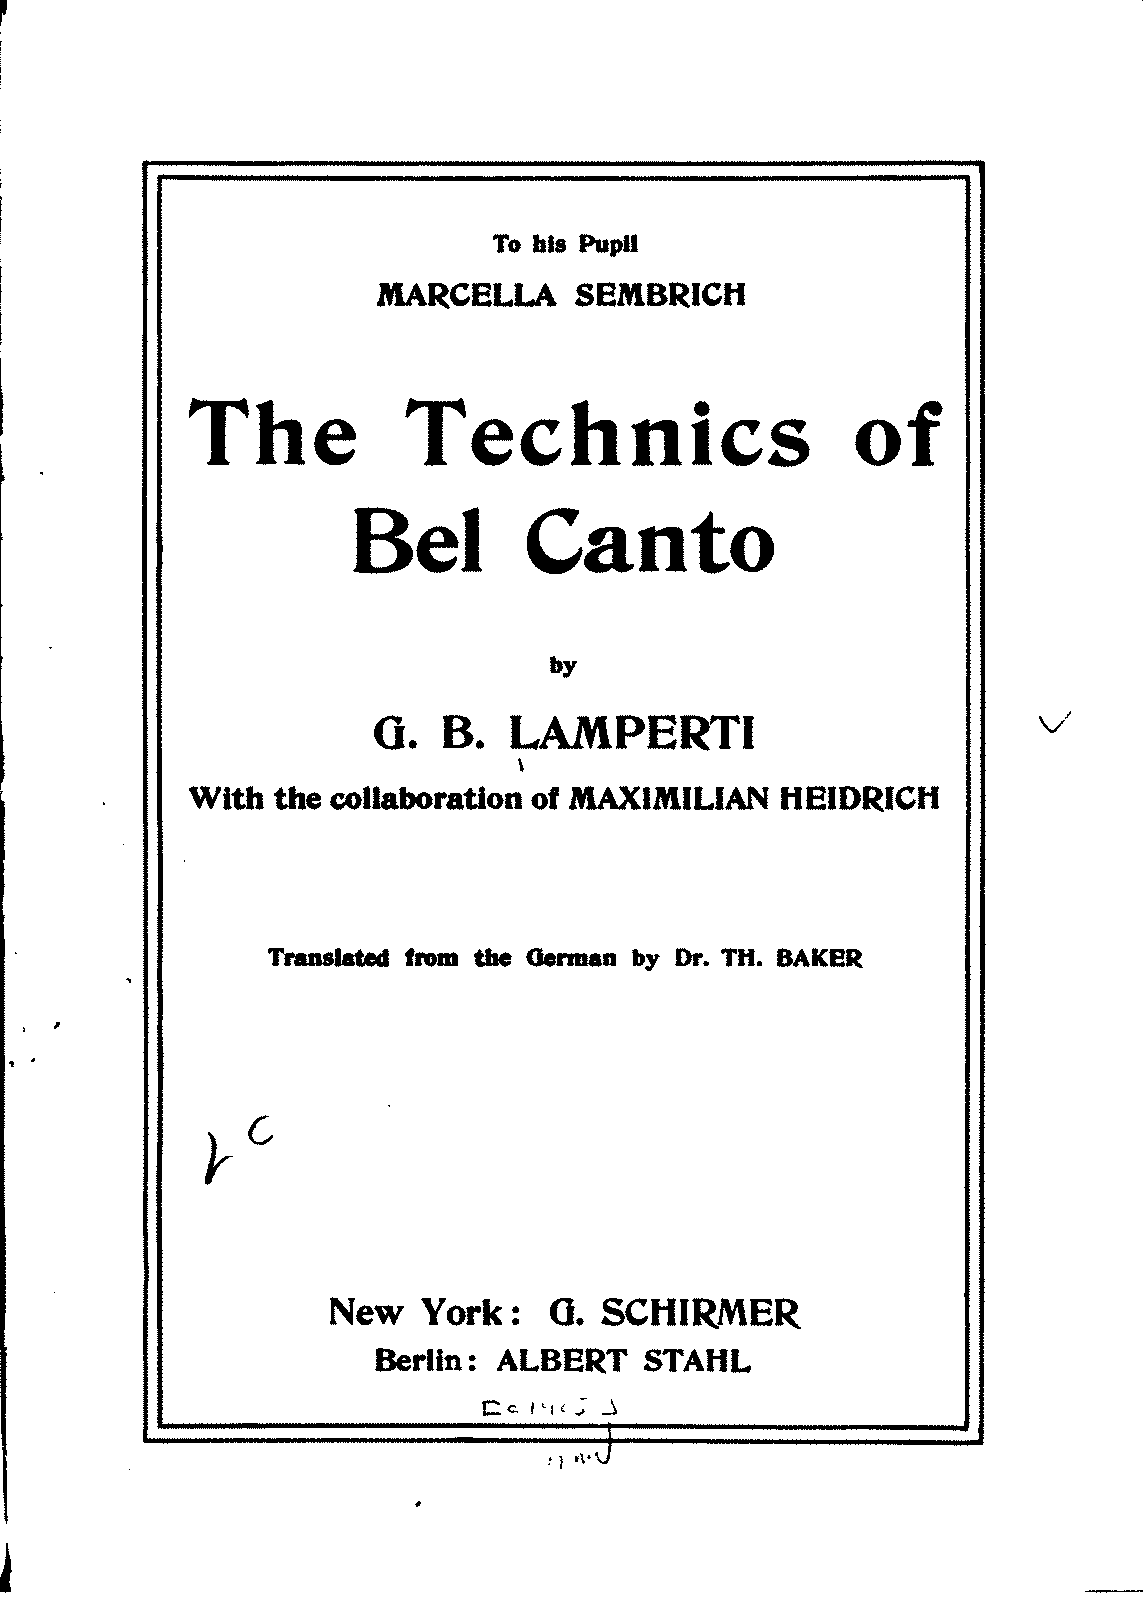 PMLP60885-G Lamperti--The Technics of Bel Canto.pdf